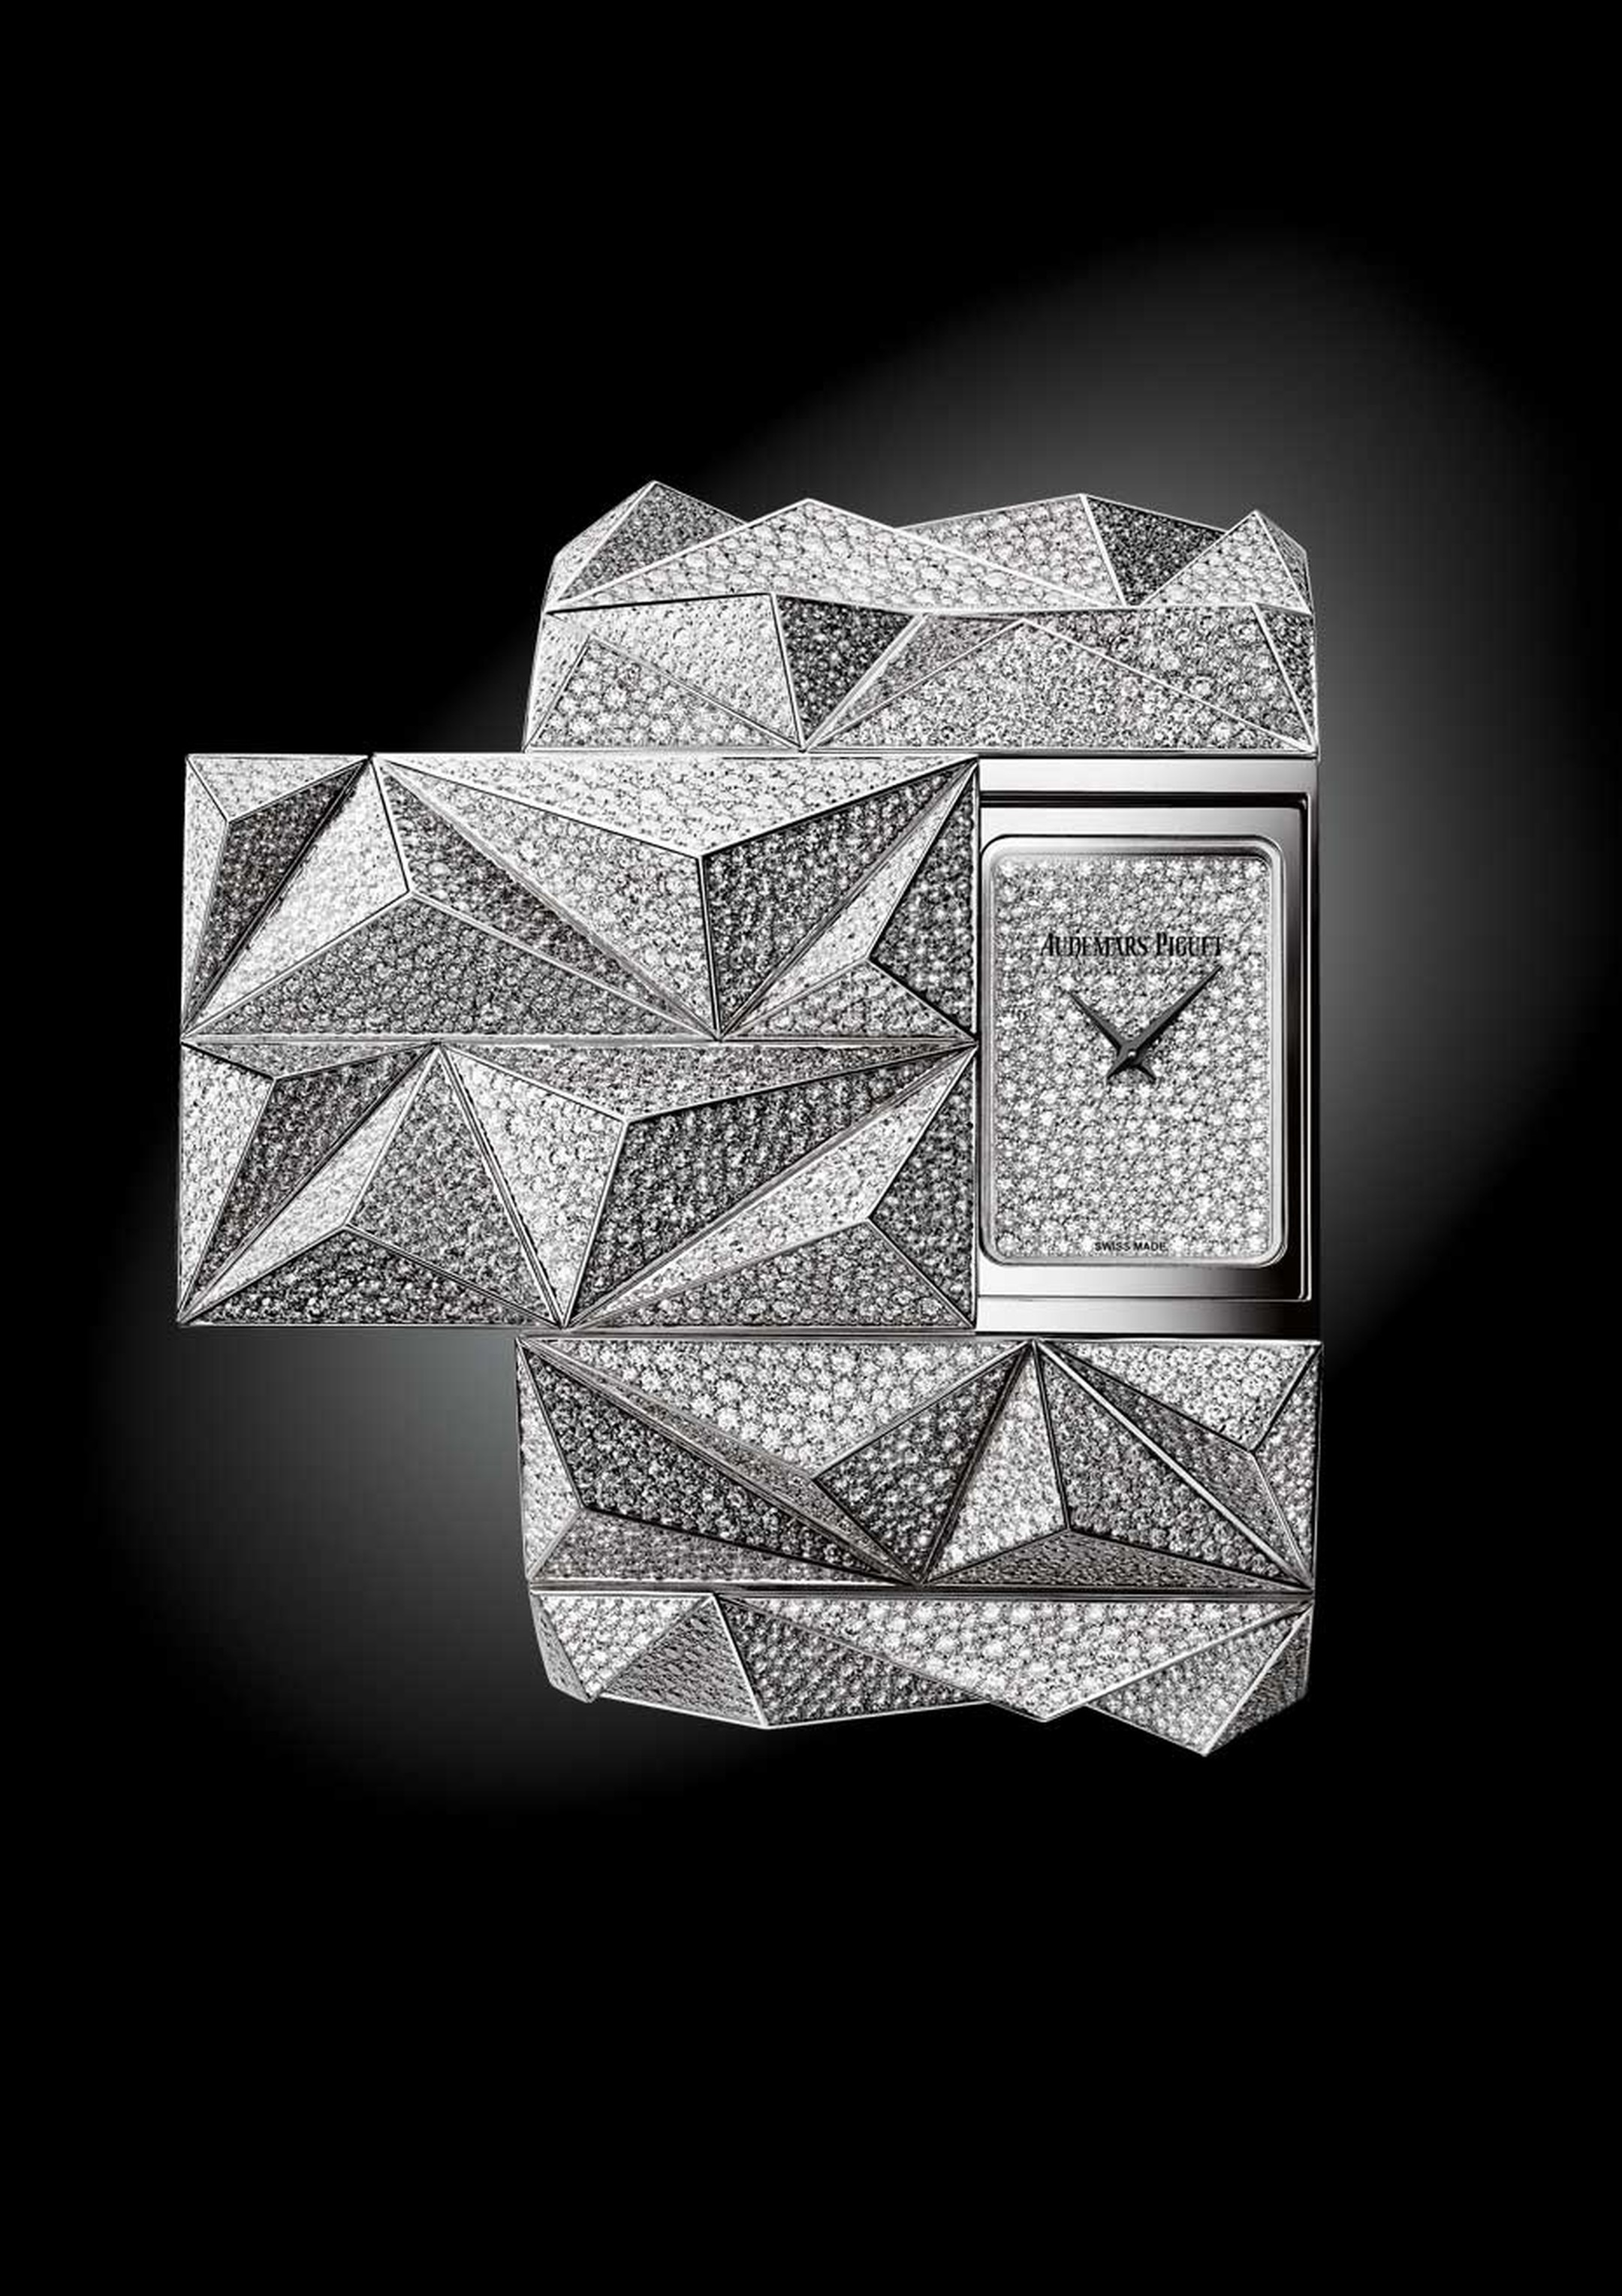 The new Audemars Piguet Diamond Punk watch, launched at the SIHH 2015, takes its inspiration from the punk era.